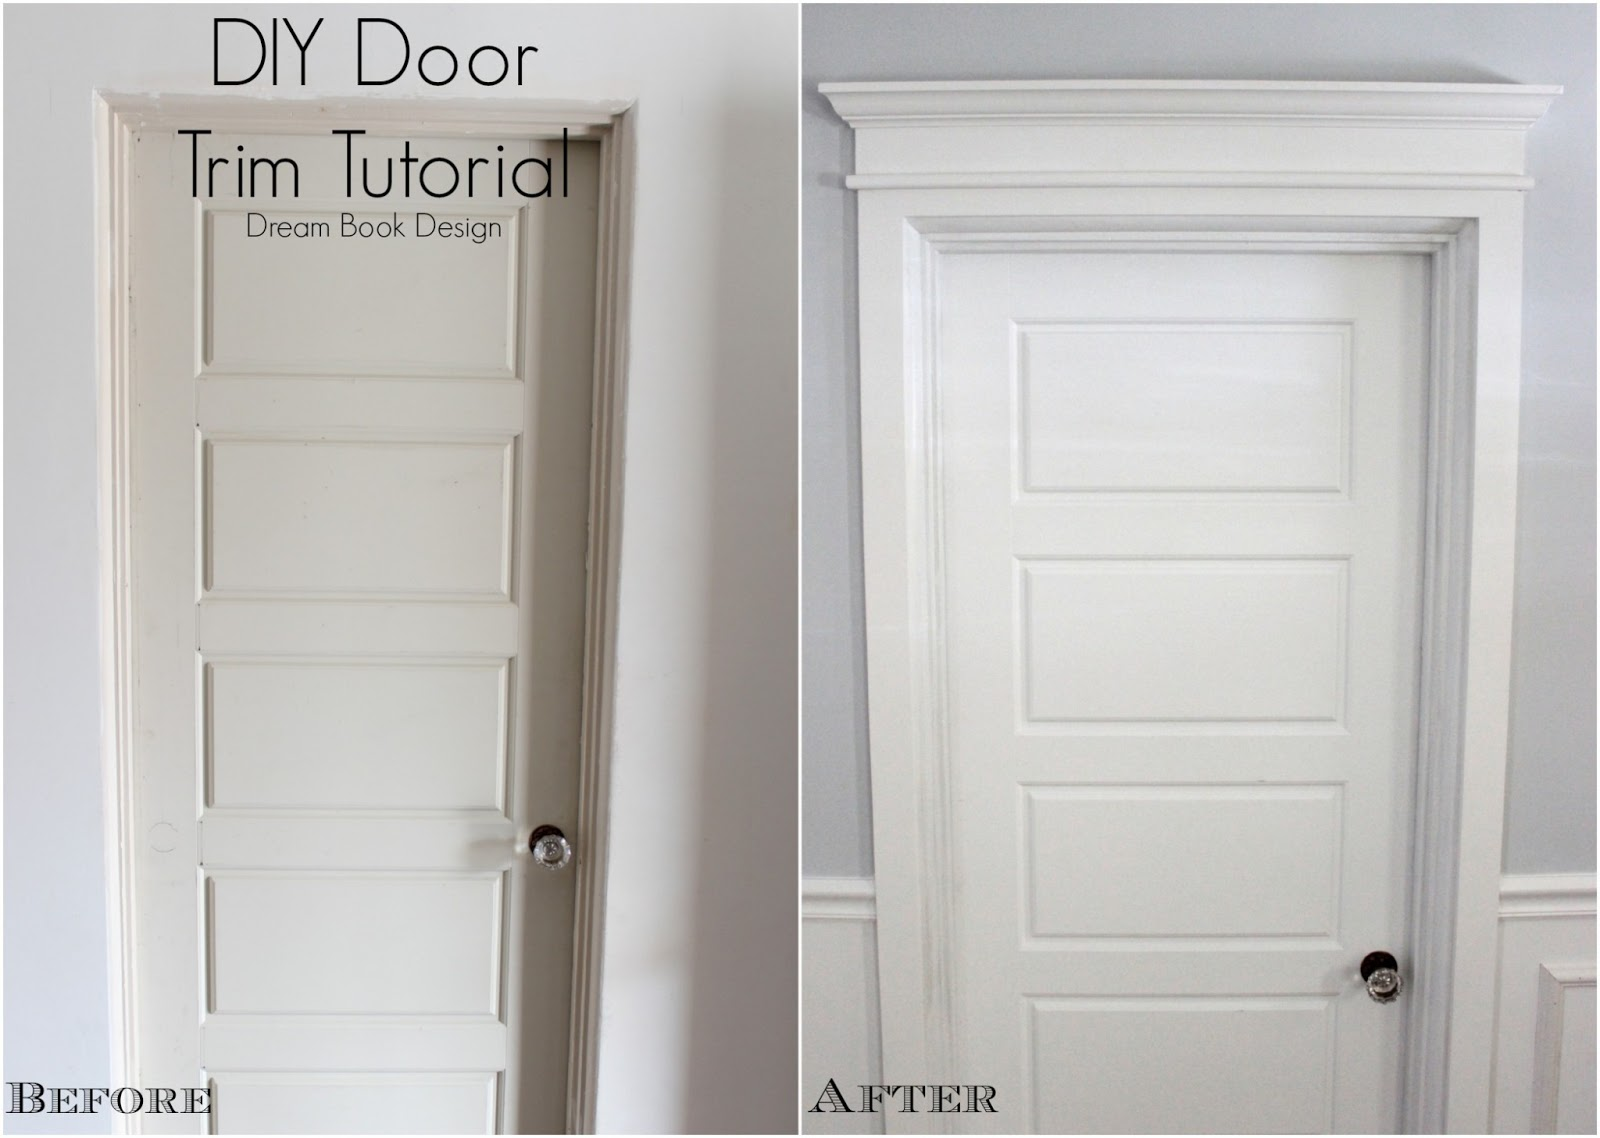 Diy door trim tutorial dream book design for Door moulding